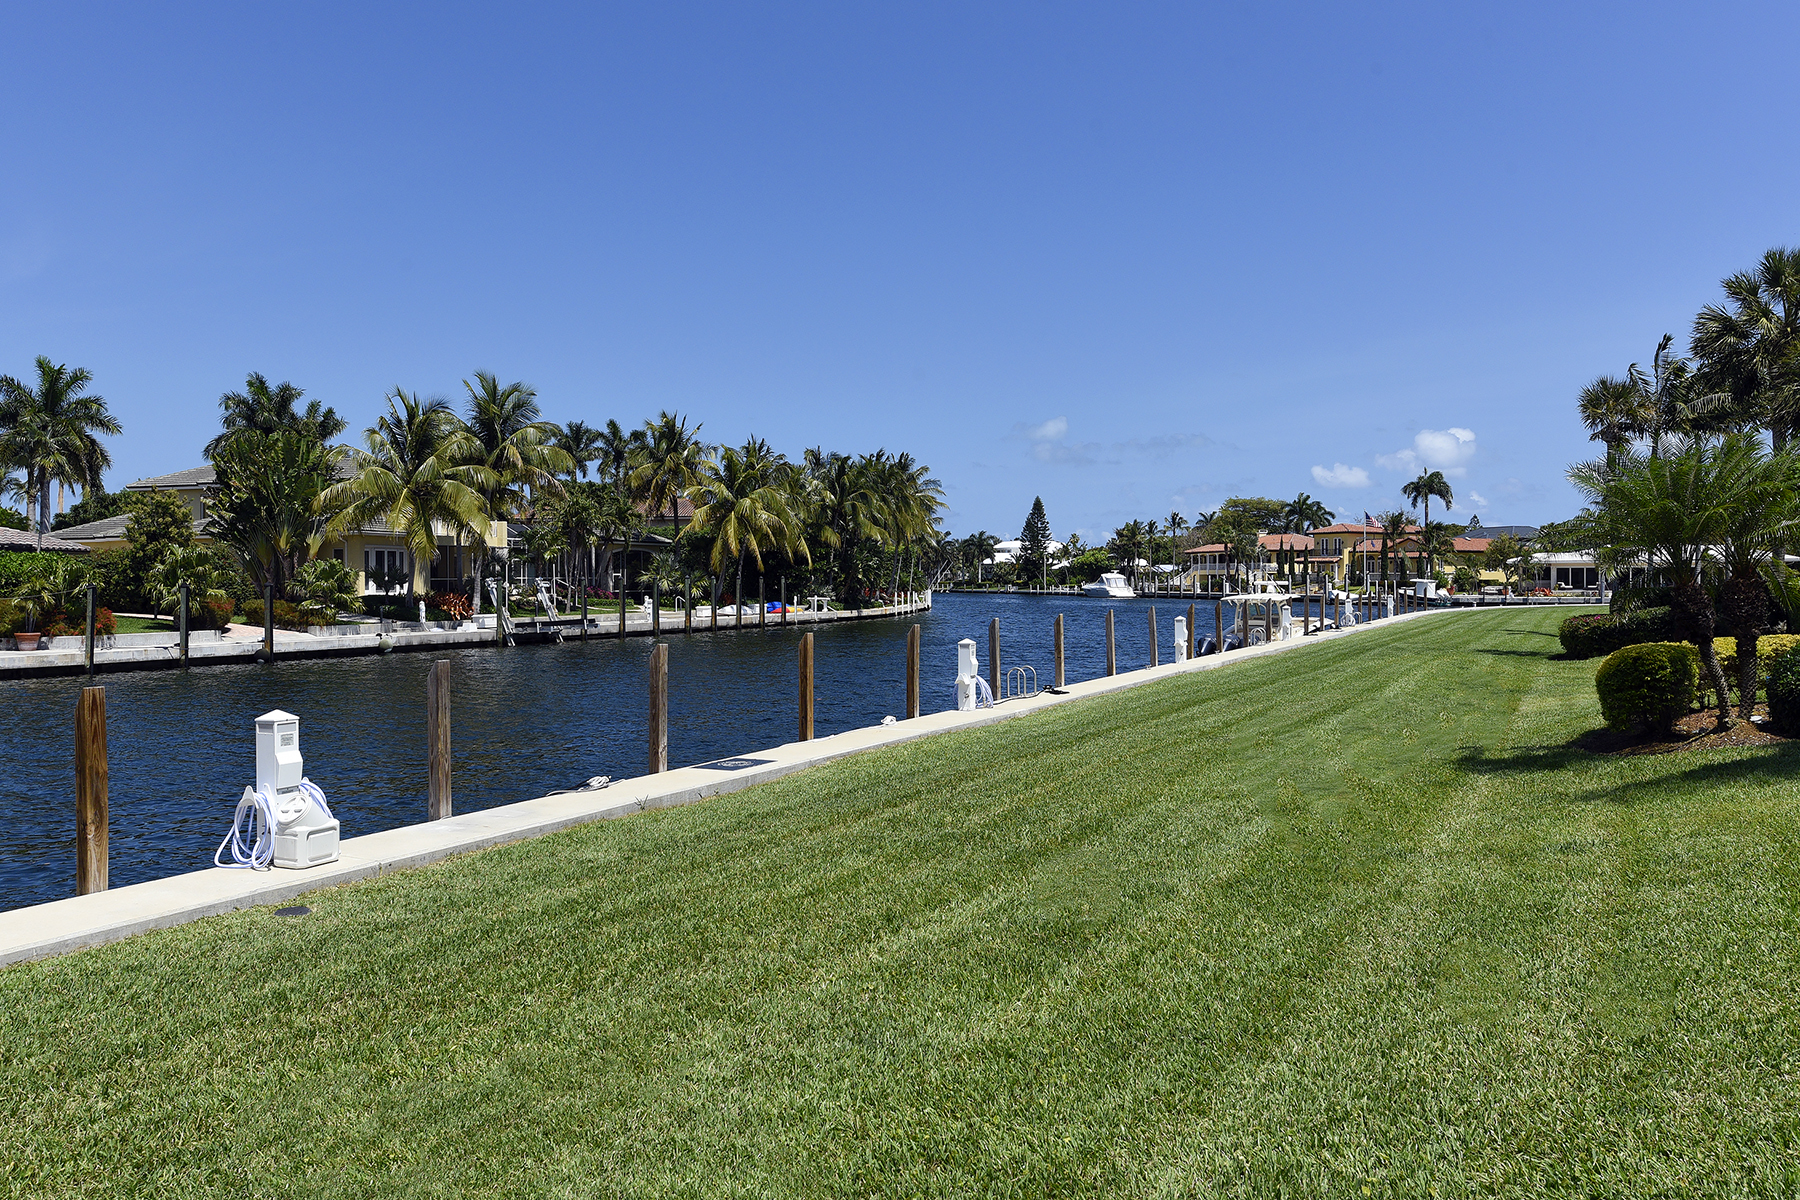 Condominium for Sale at Waterfront Condominium at Ocean Reef 34 Ocean Reef Drive Cay Harbor 3D Ocean Reef Community, Key Largo, Florida, 33037 United States